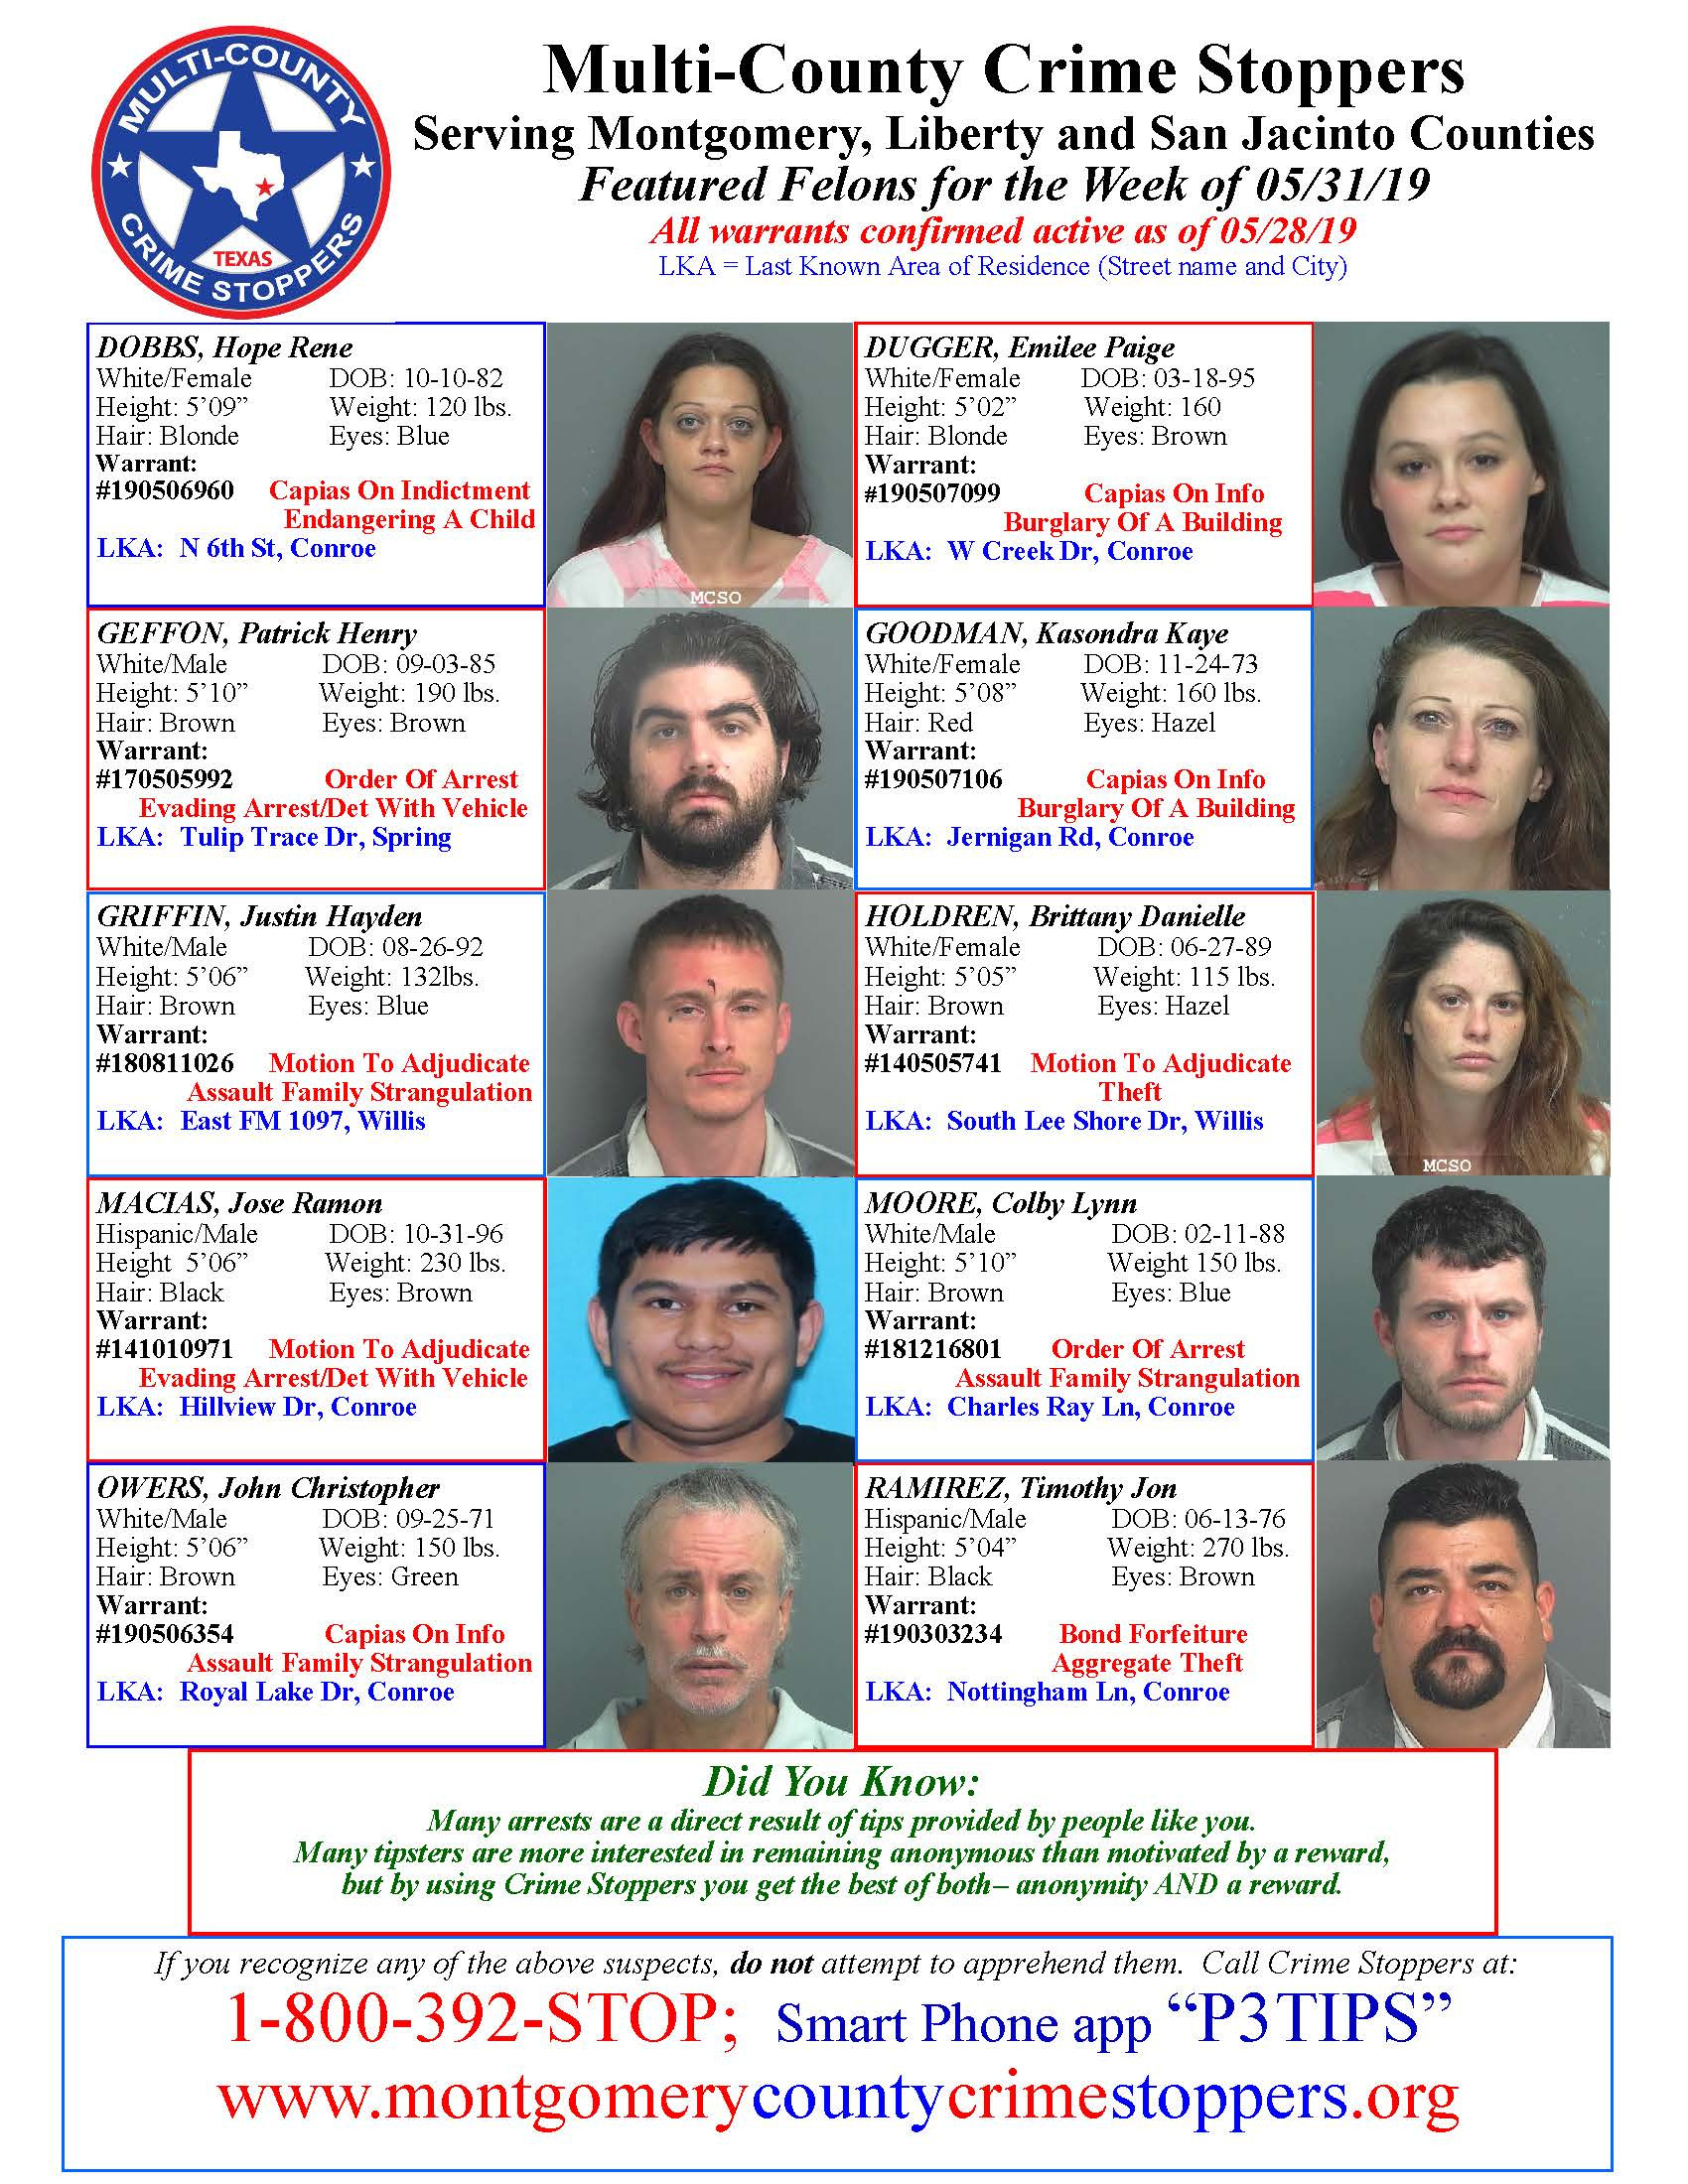 CRIME STOPPERS FEATURED FELONS 05.31.19